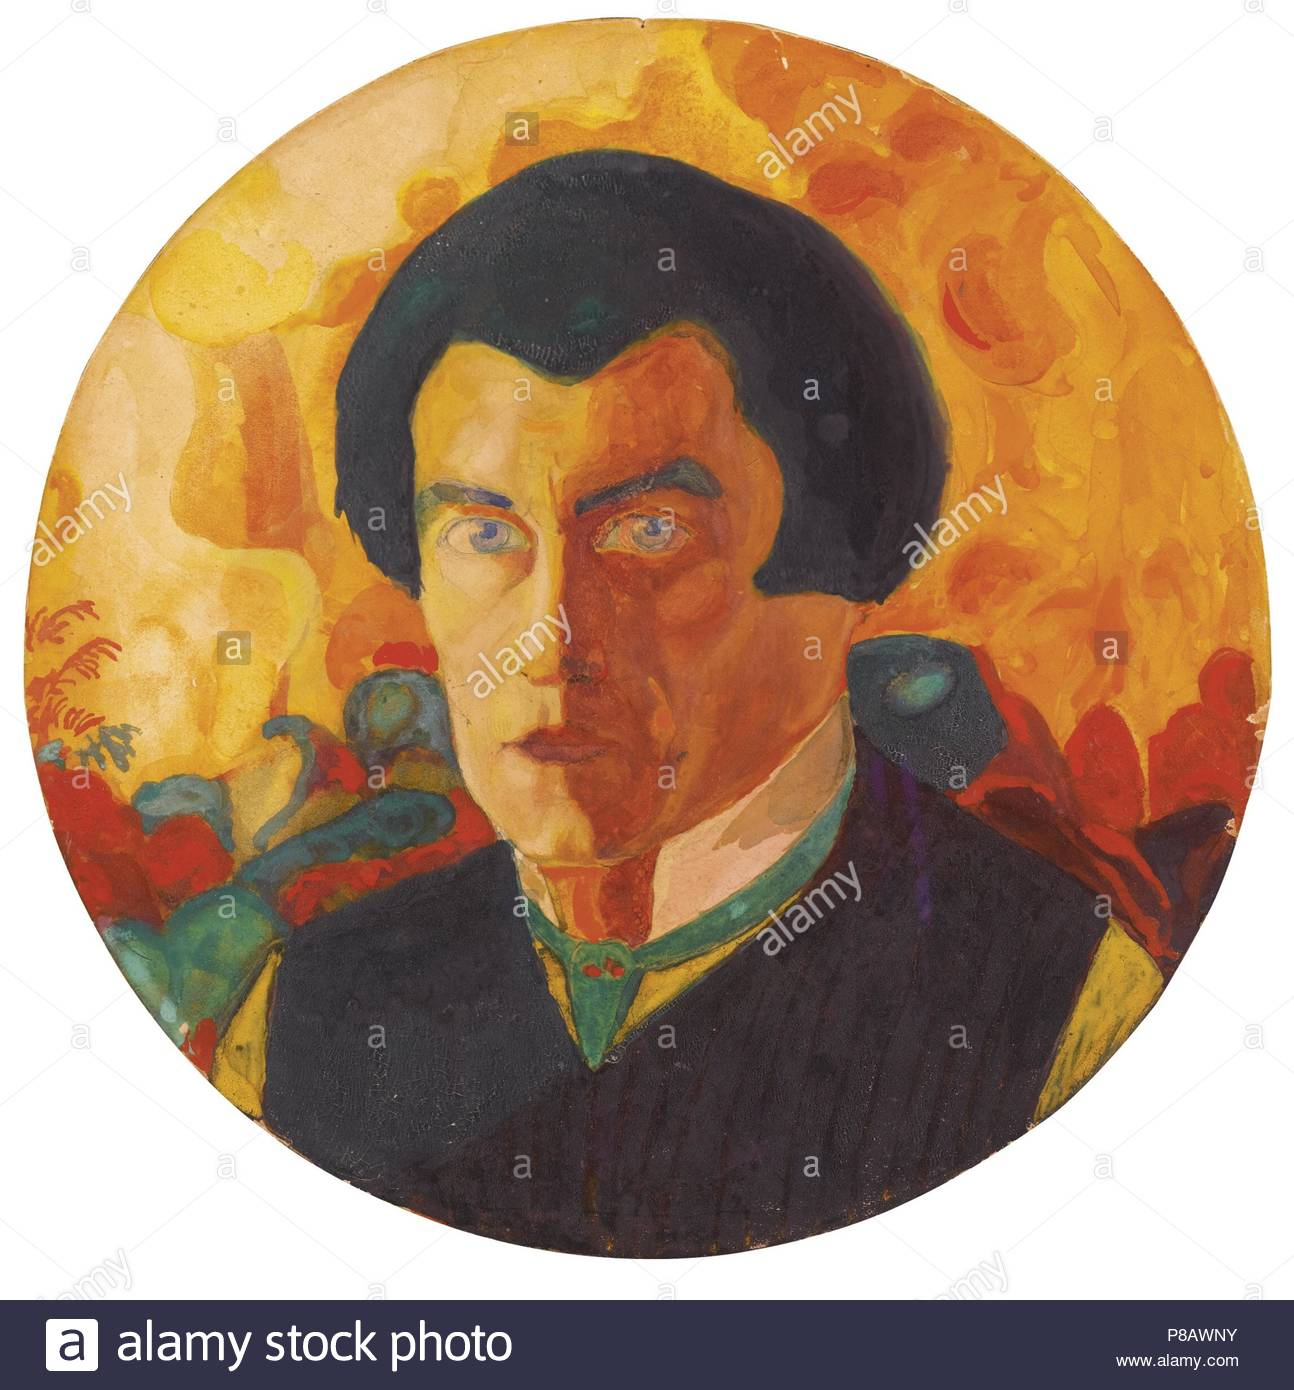 Malevich Portrait Stock Photos Amp Malevich Portrait Stock Images Alamy